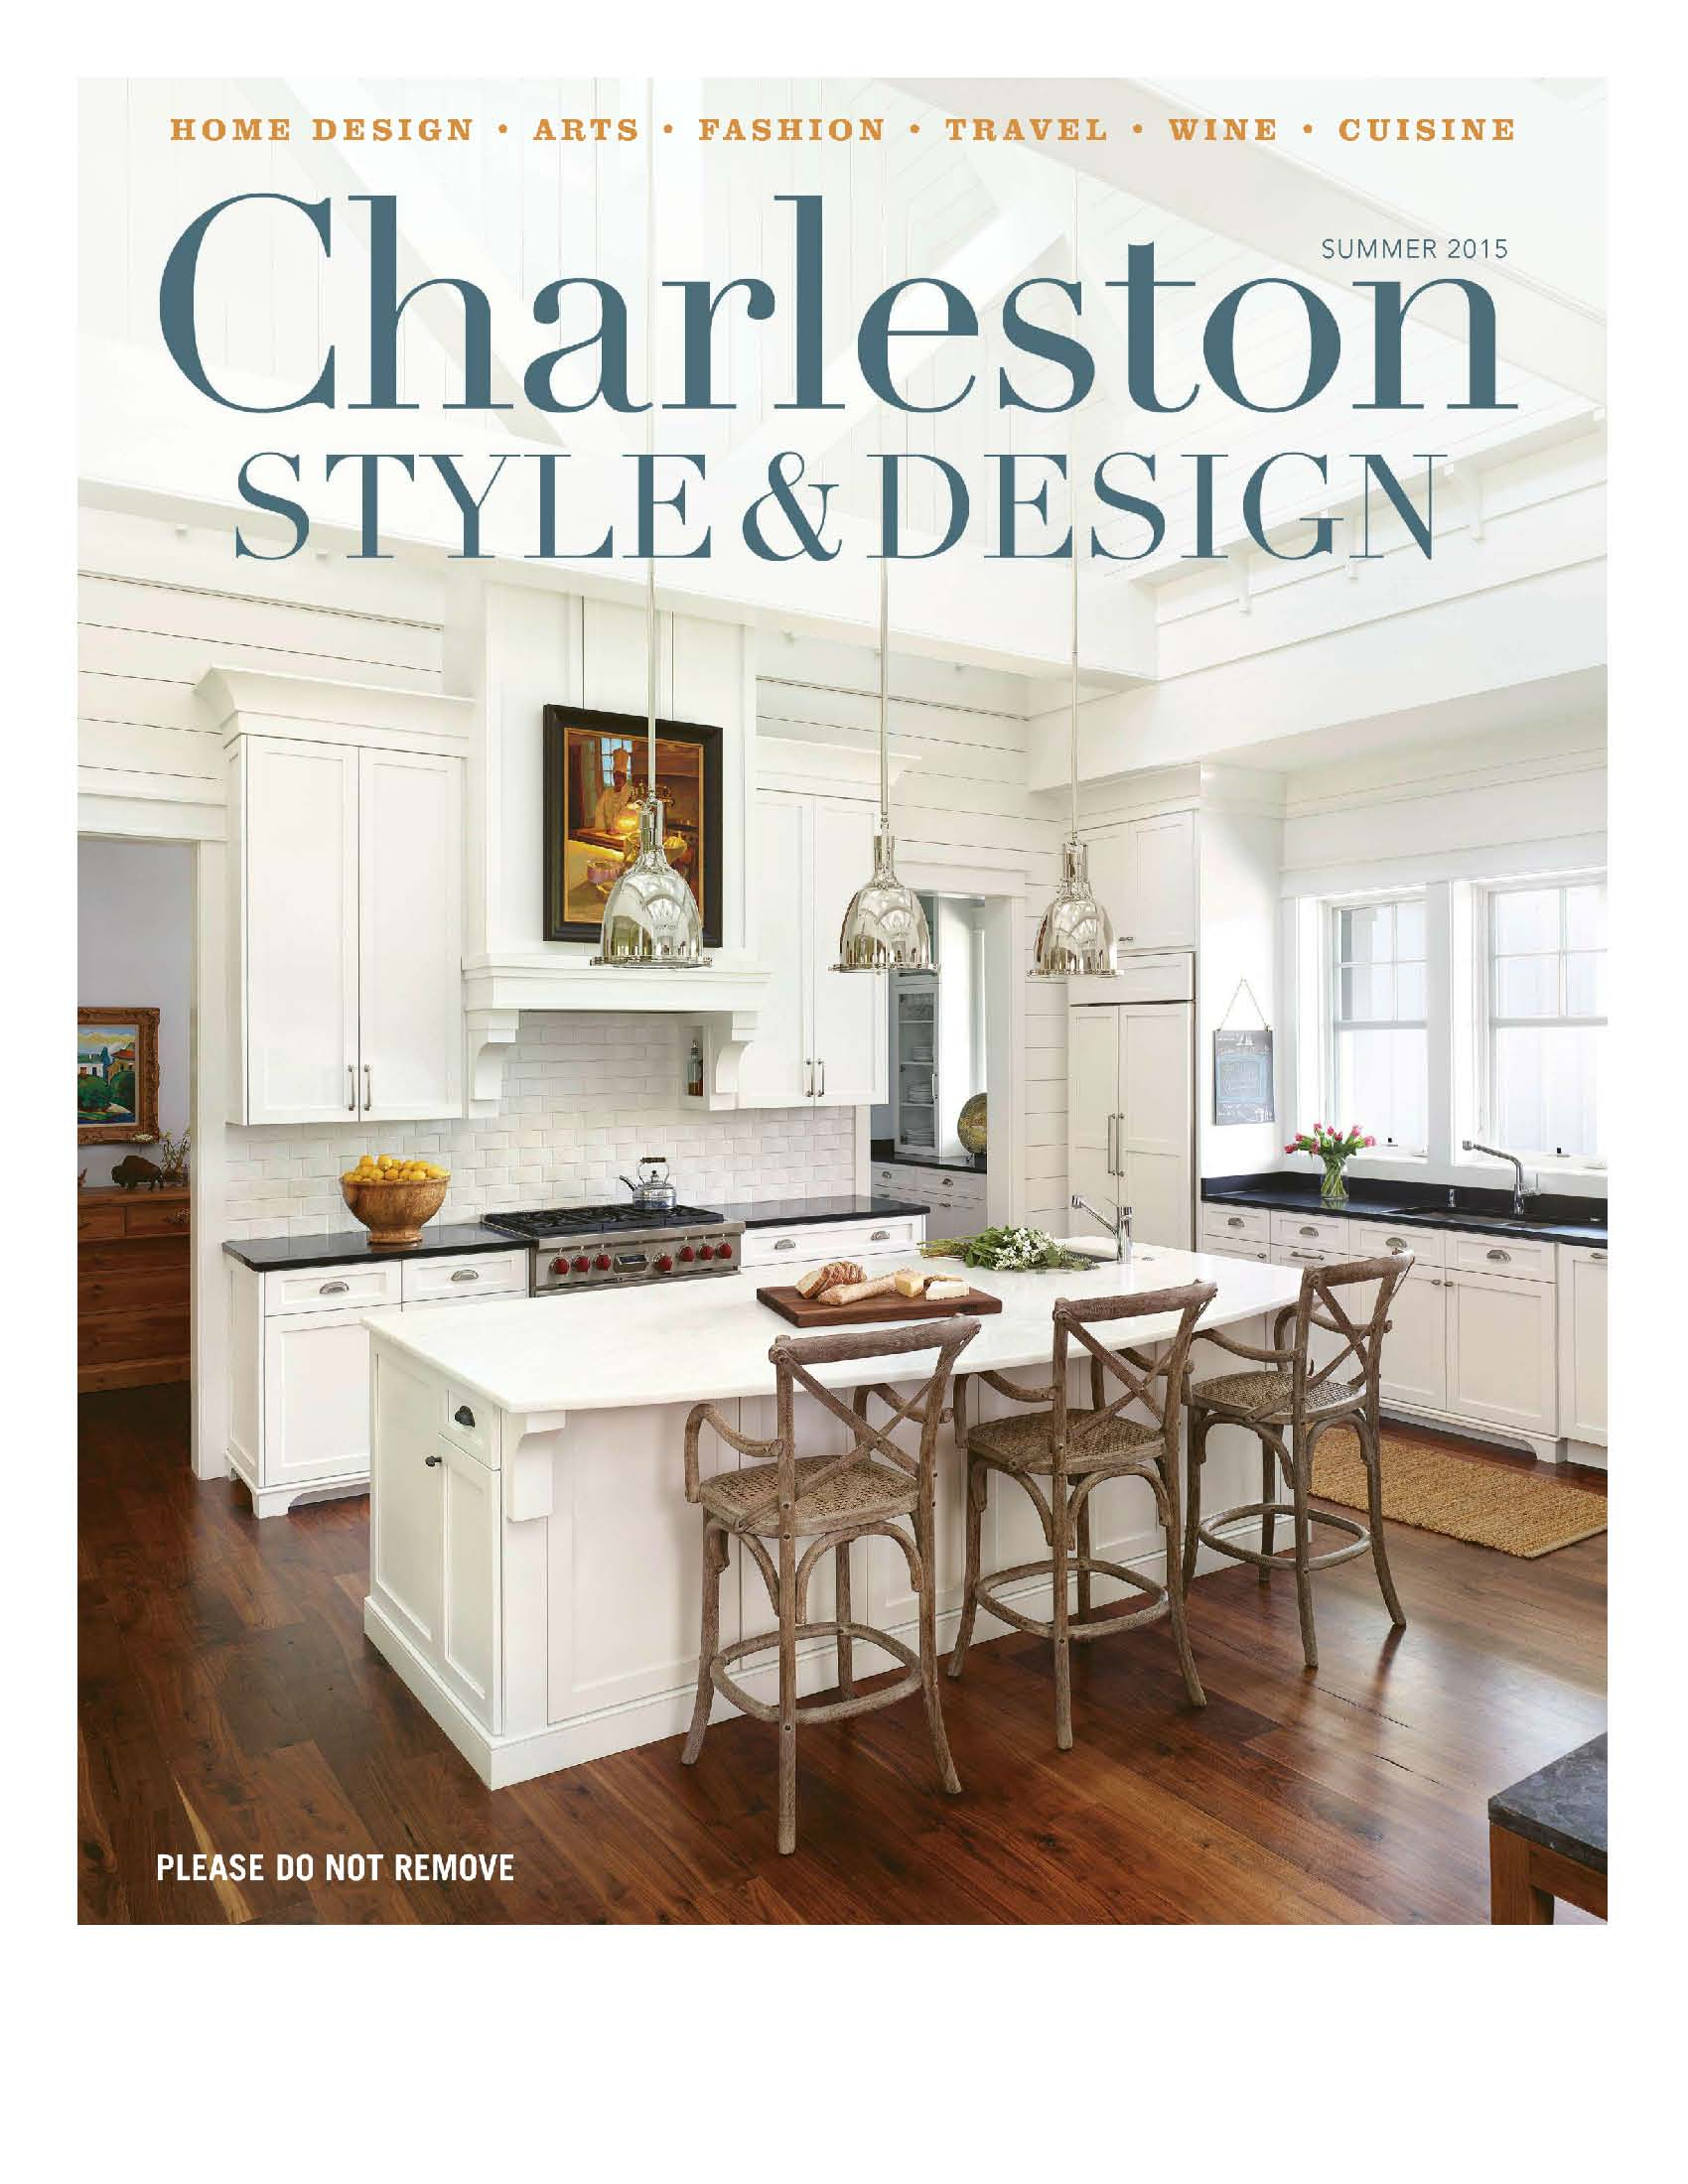 Charleston style and design summer 2015 cover william c for Charleston style and design